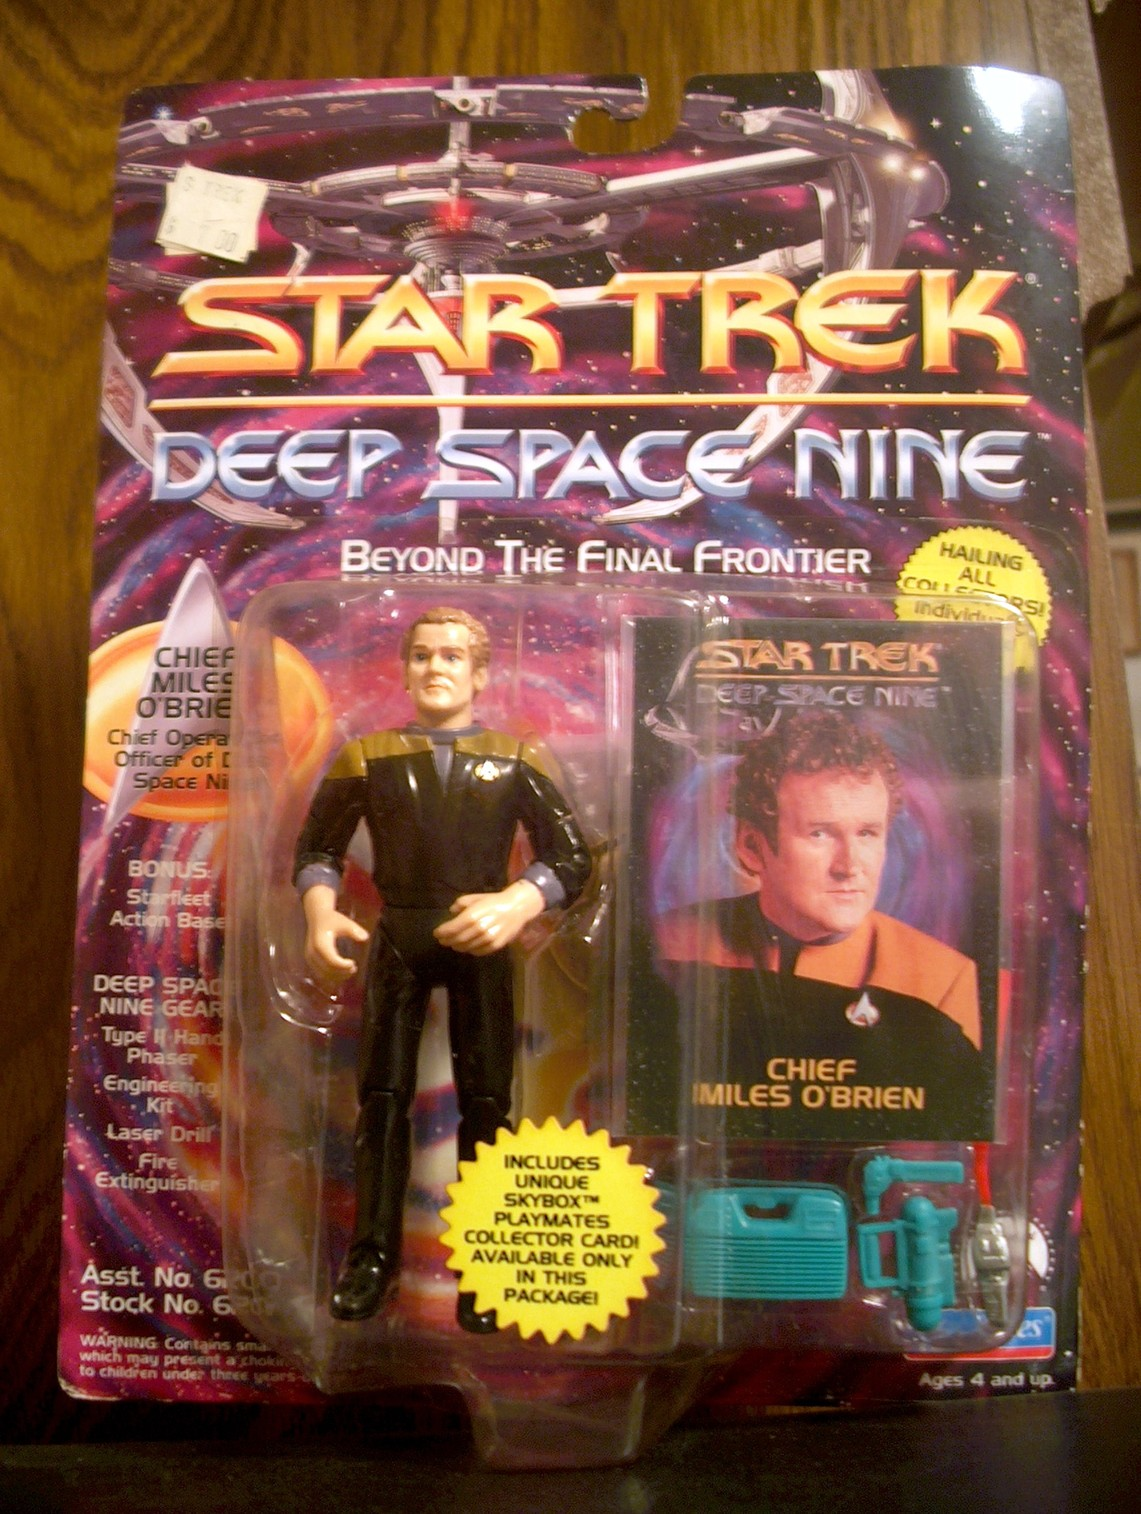 Chief Miles O'Brien (Chief Operations Officer)